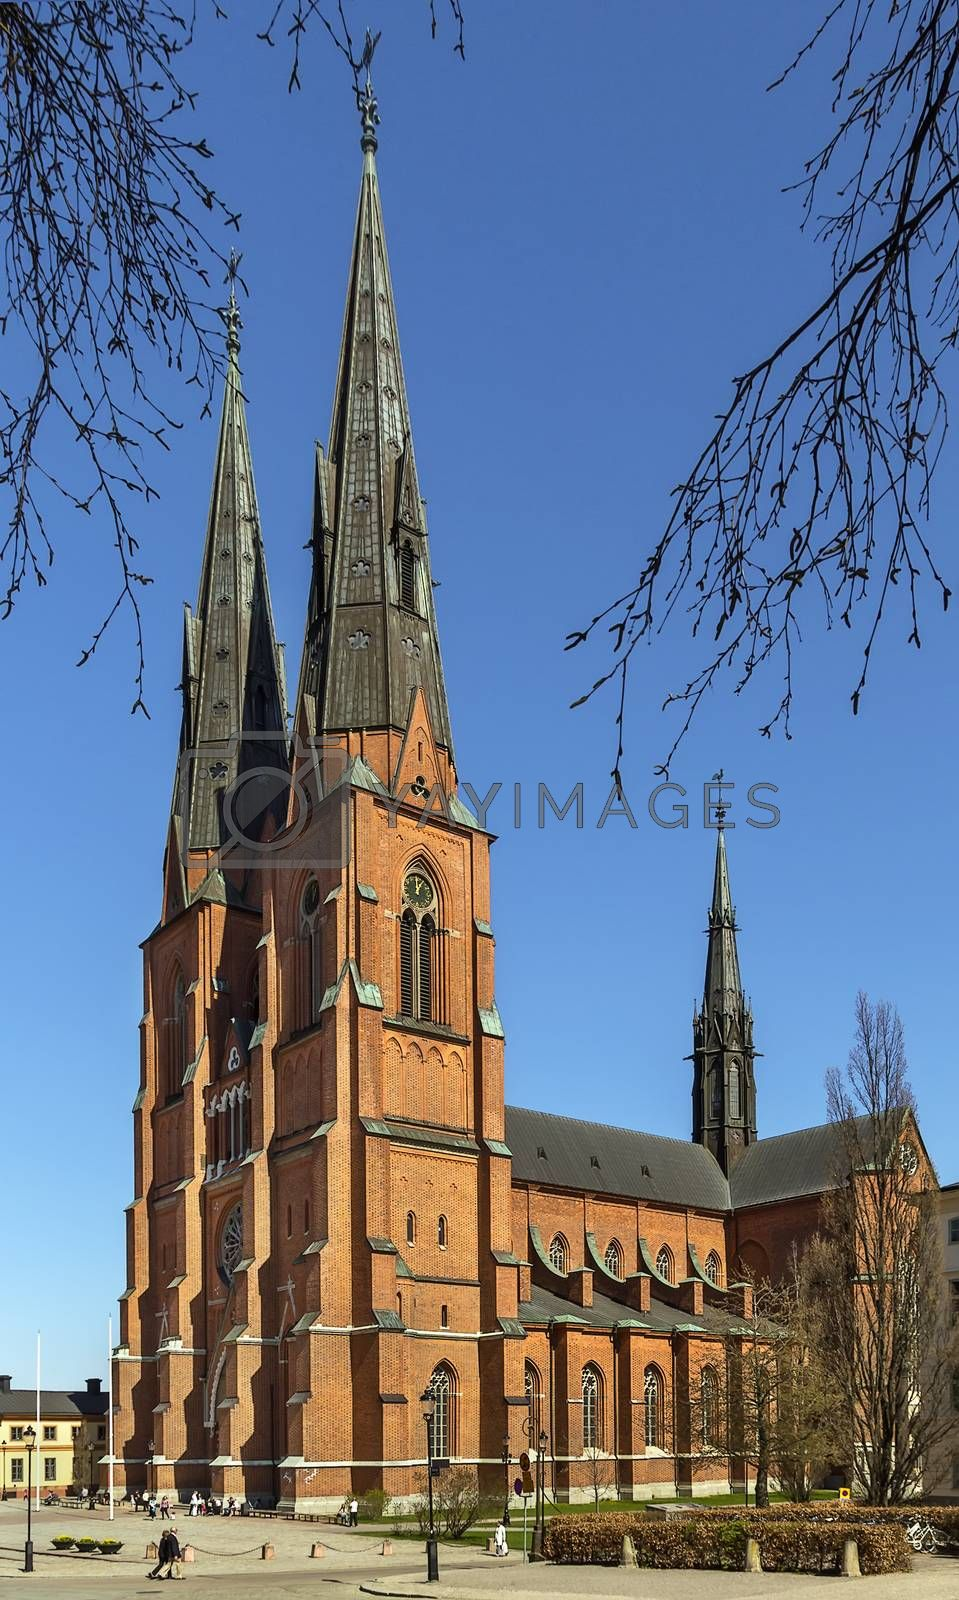 Uppsala Cathedral by borisb17